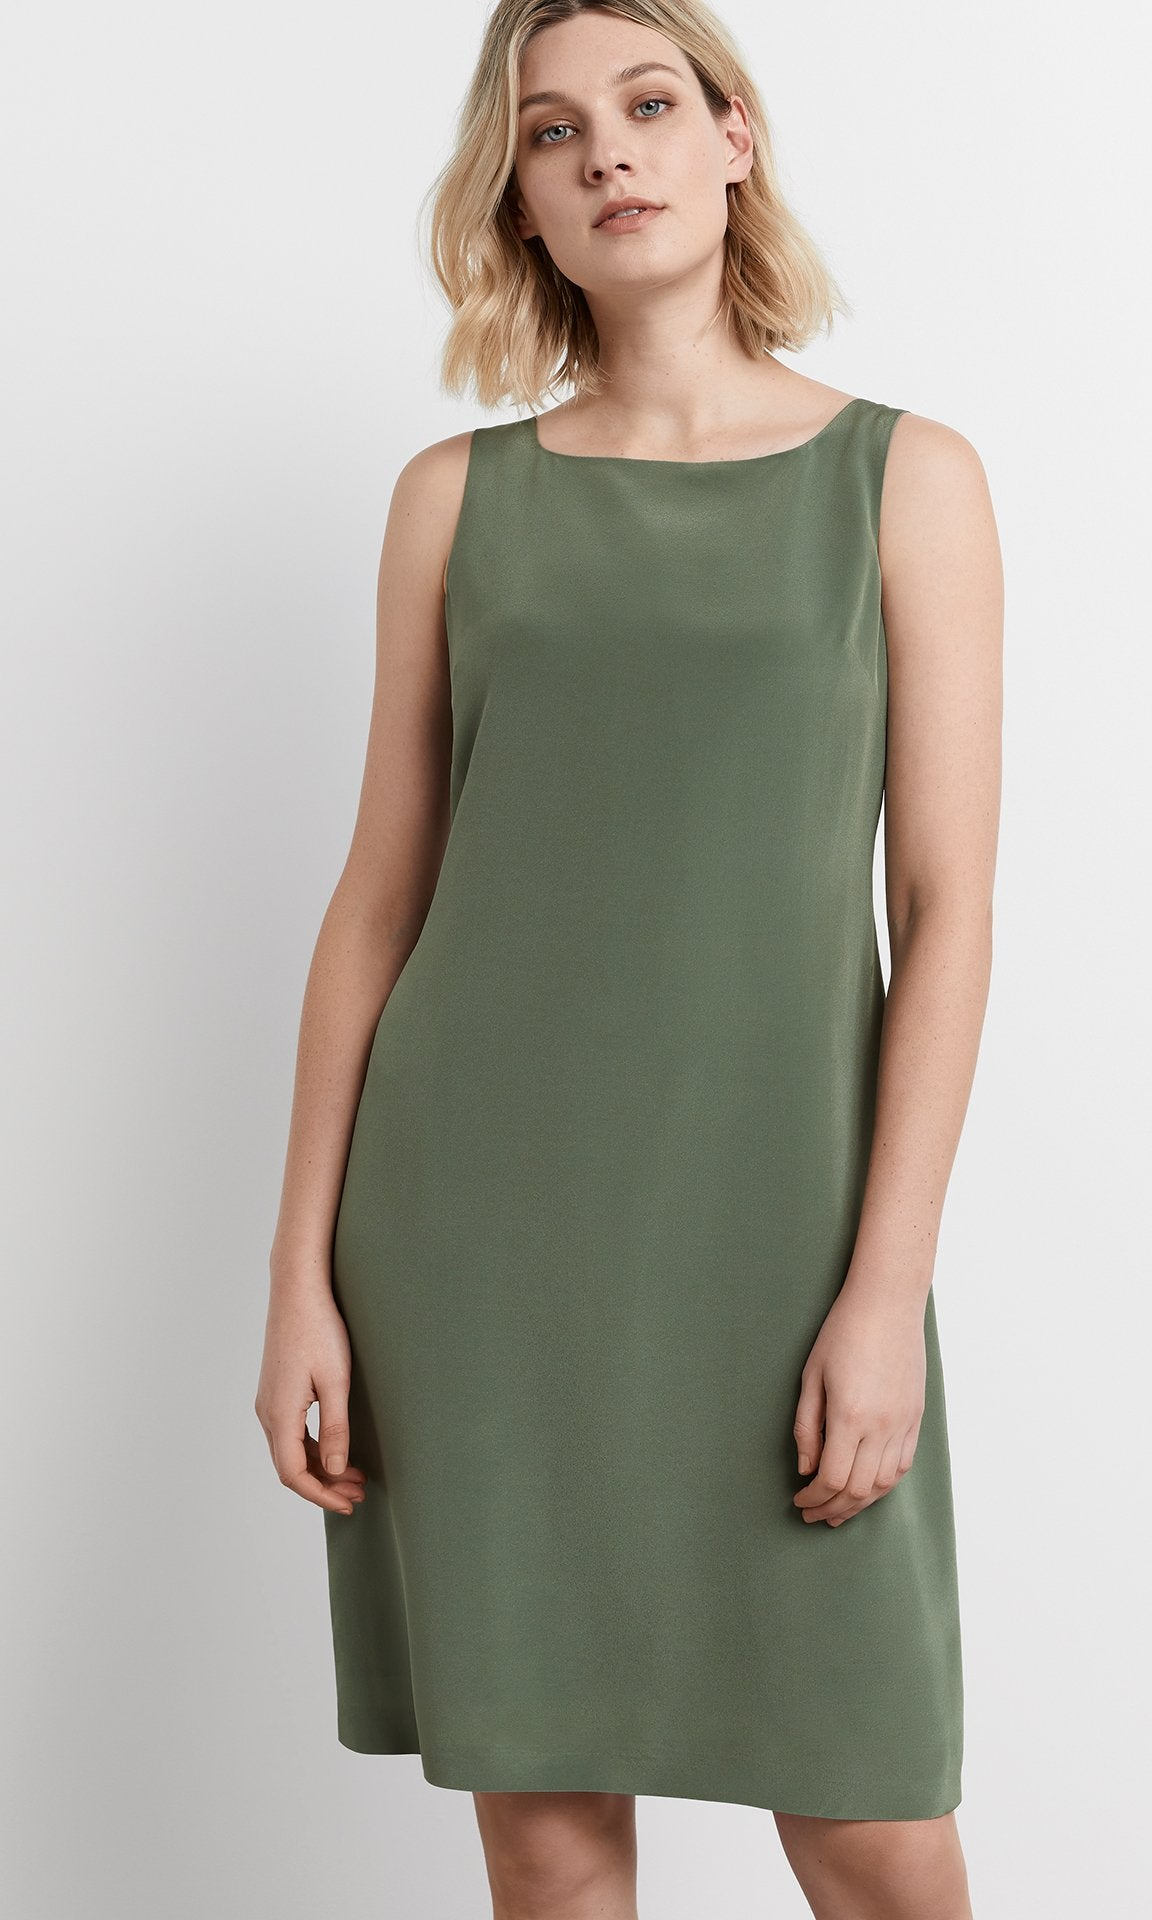 Gavi Dress - Avocado